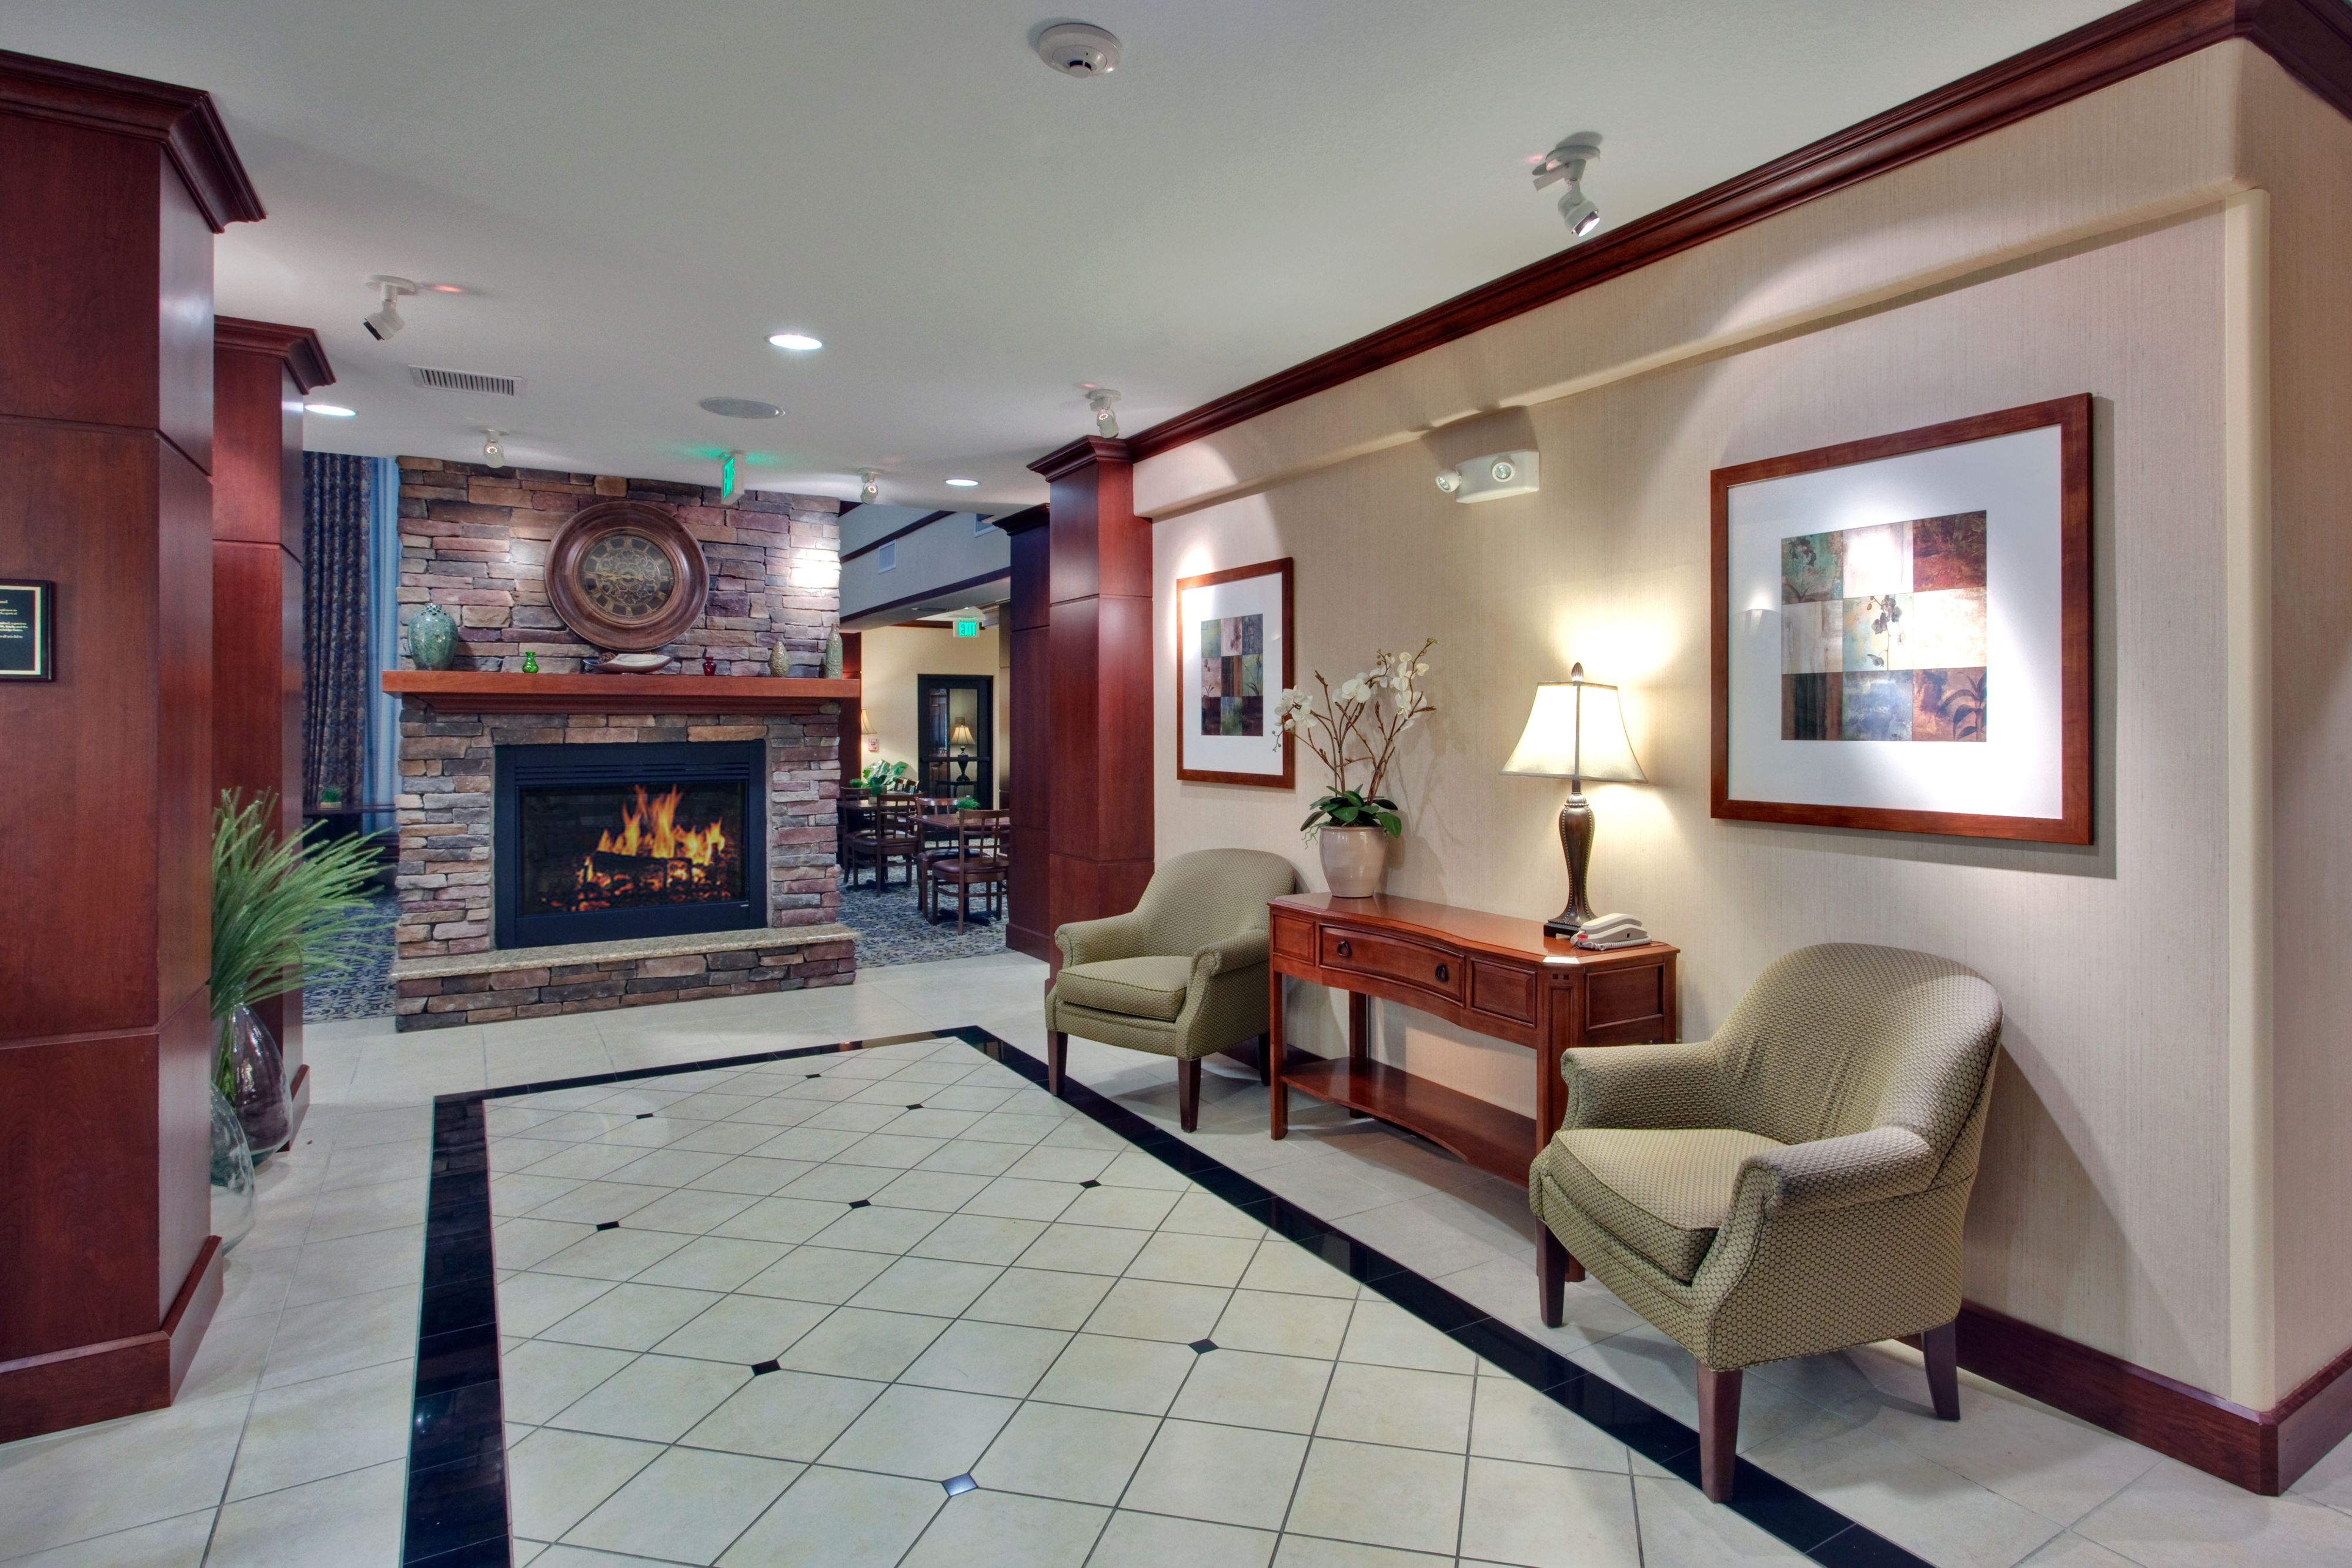 Staybridge Suites Phoenix - Glendale Sports Dist image 4